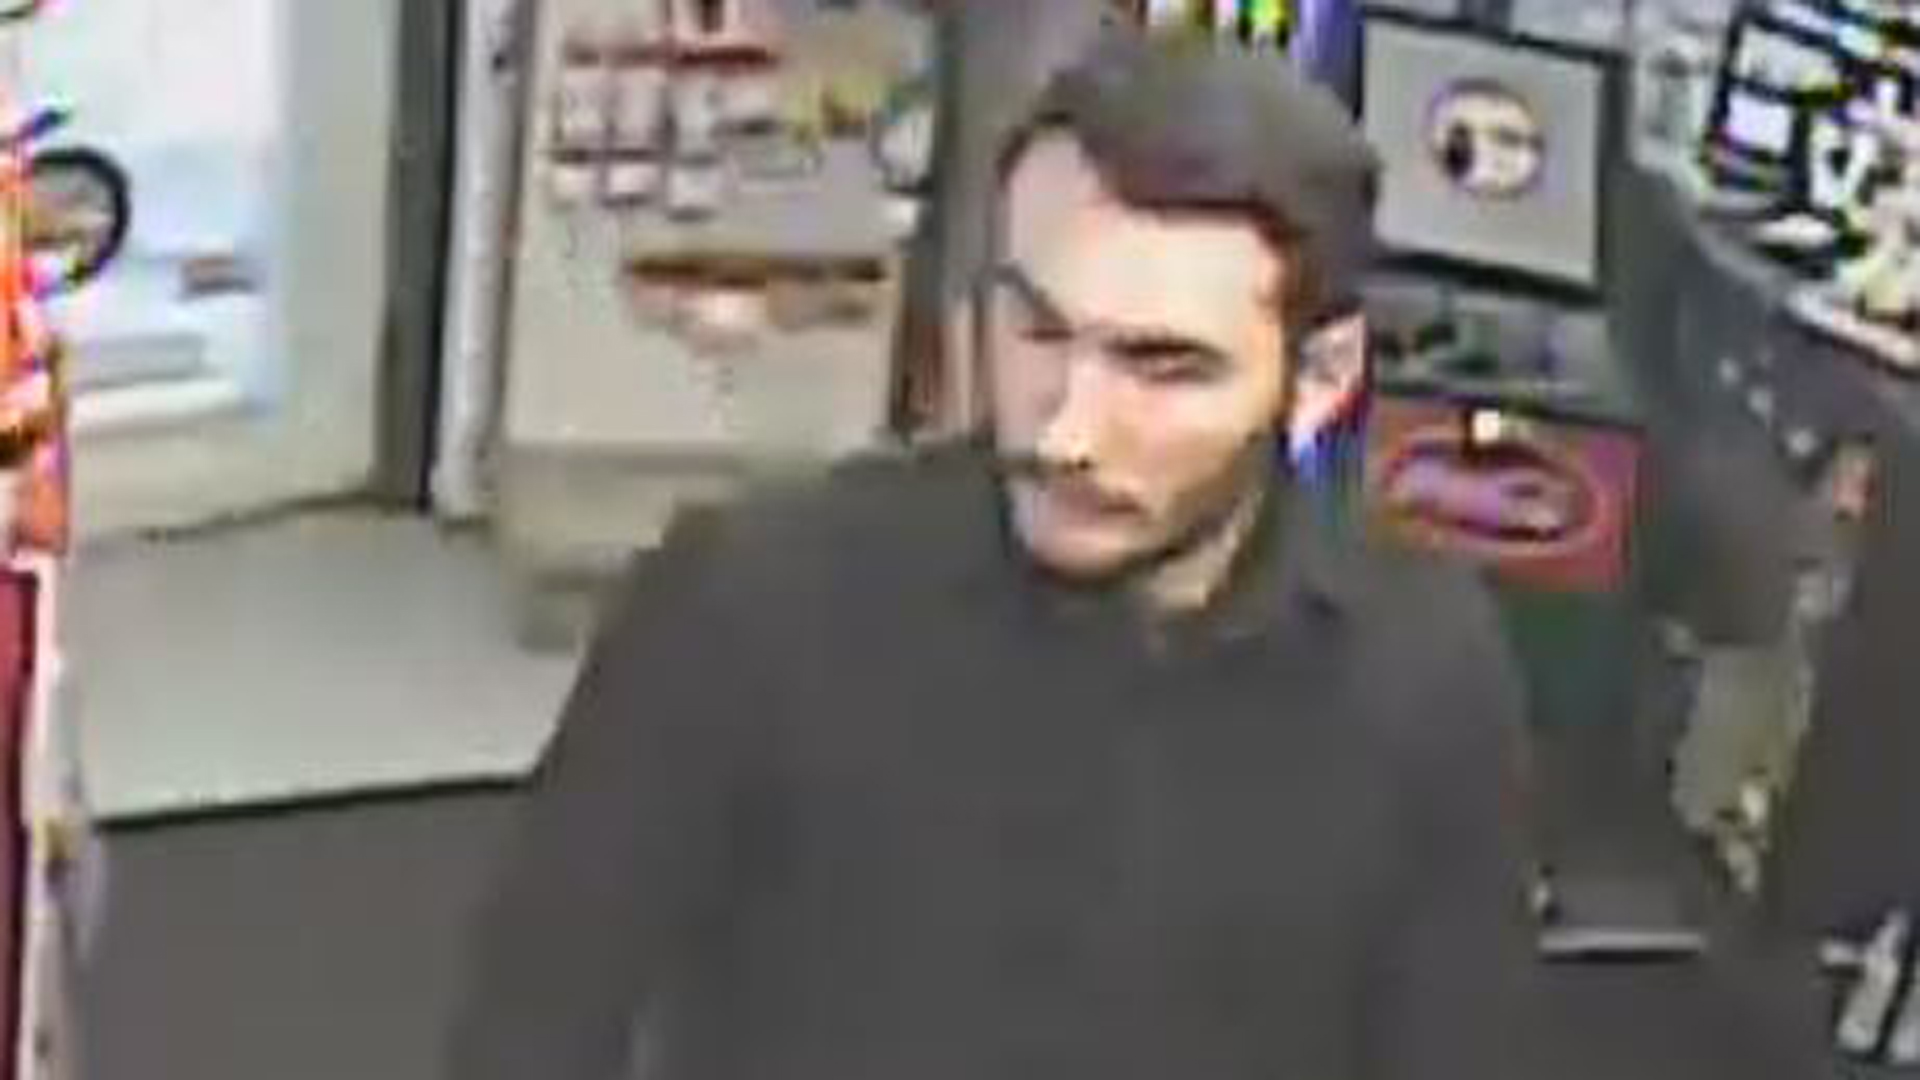 Michael Alexander Brown, 22, is seen in an undated surveillance photo released by the Franklin County Sheriff's Office.